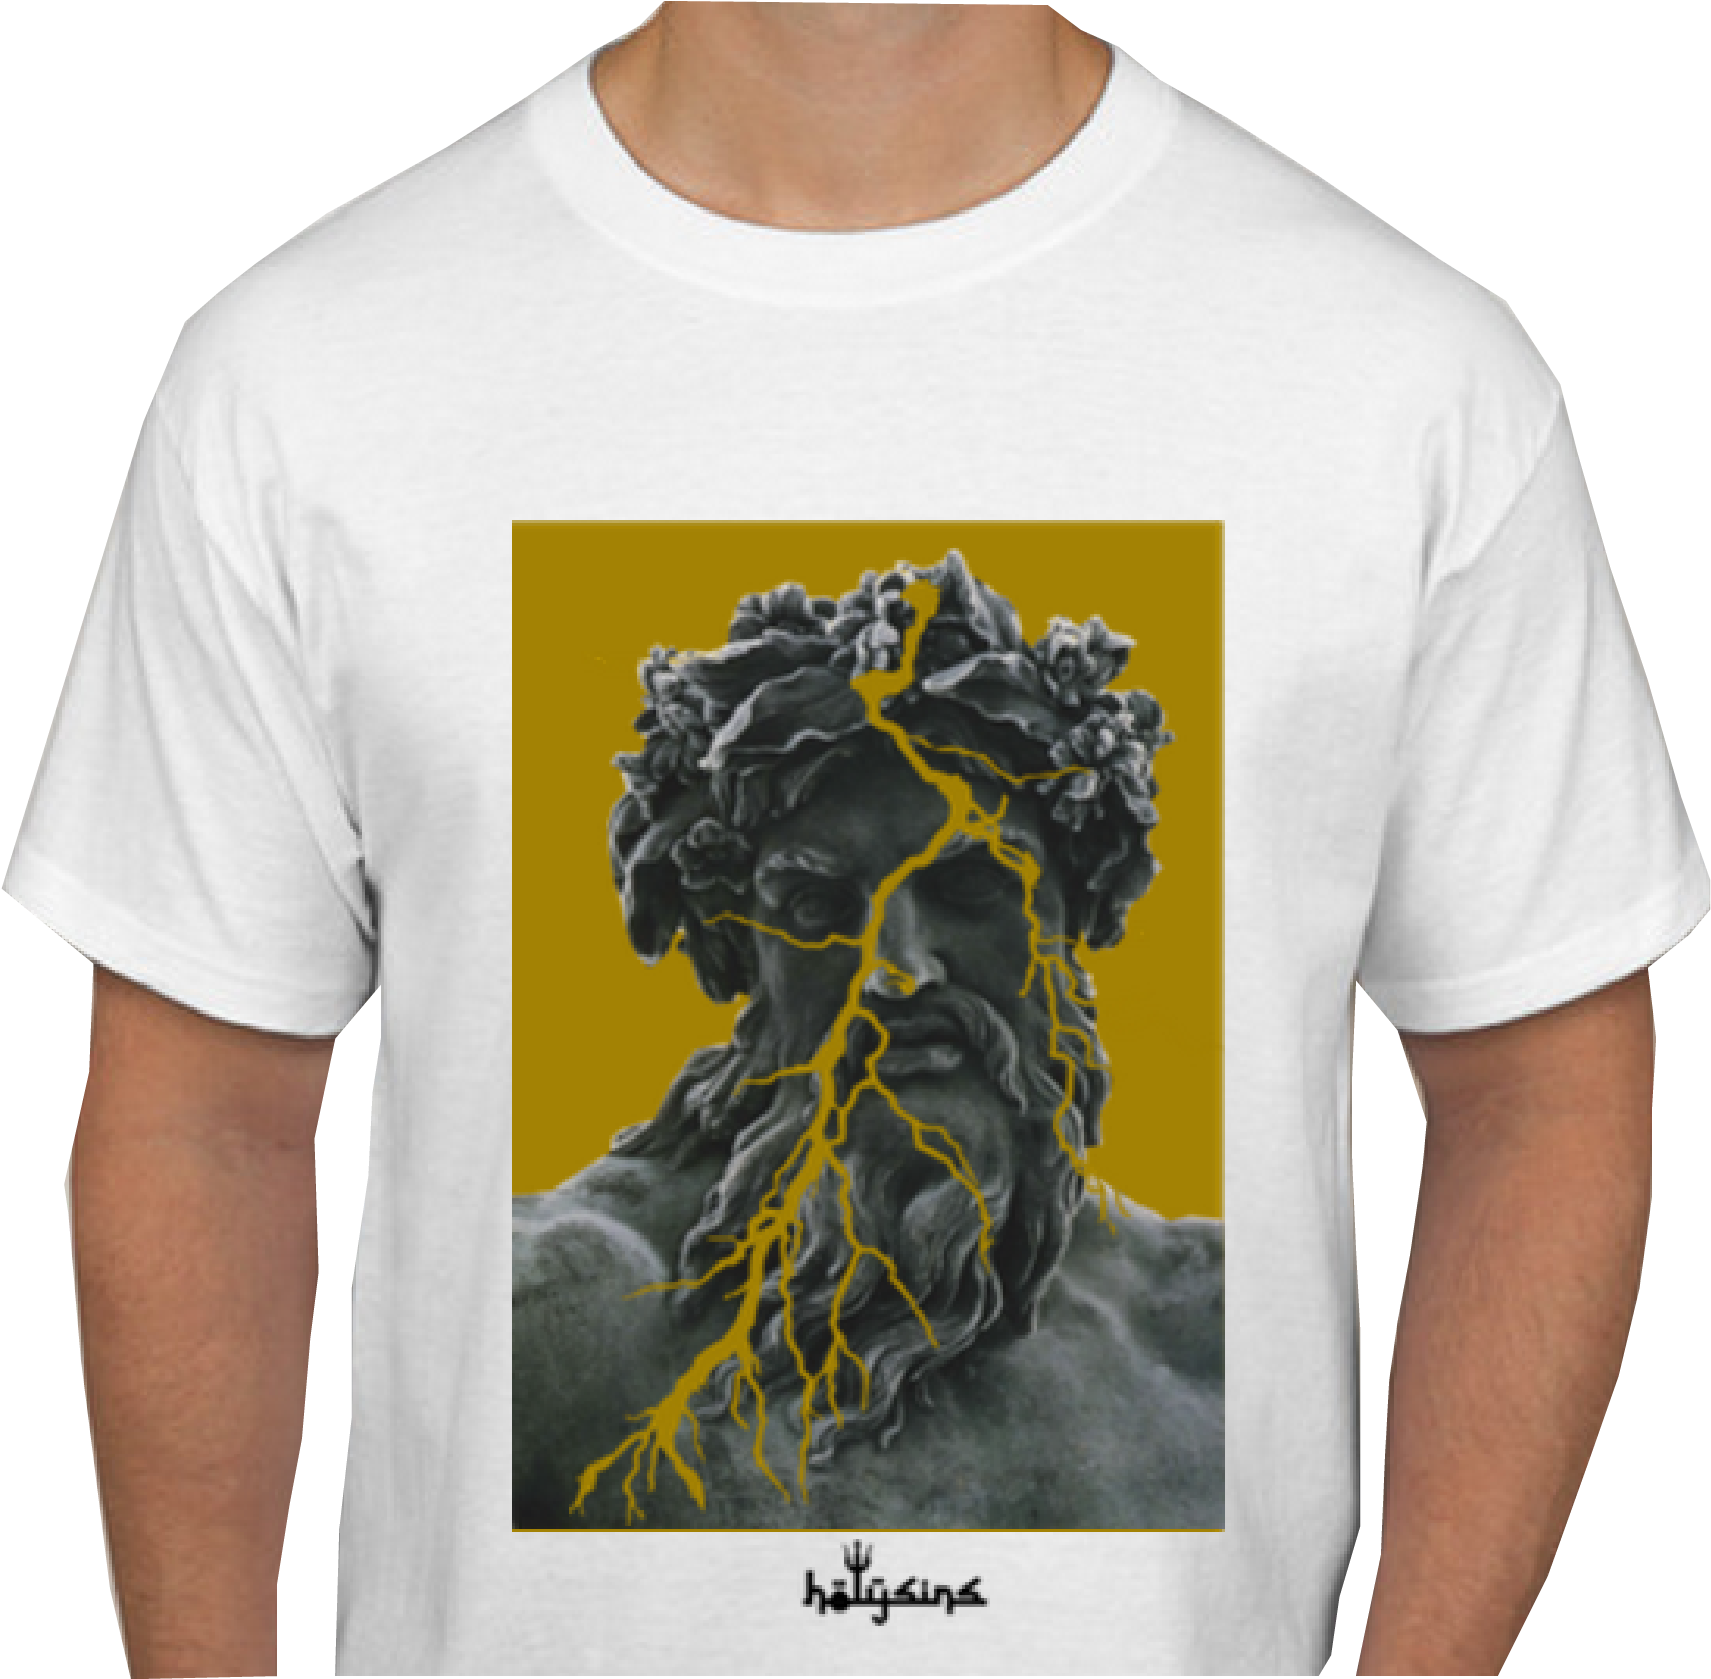 Transparent chaos clipart - Image Of Zeus Chaos Tee - Hades Greece Gods Statues